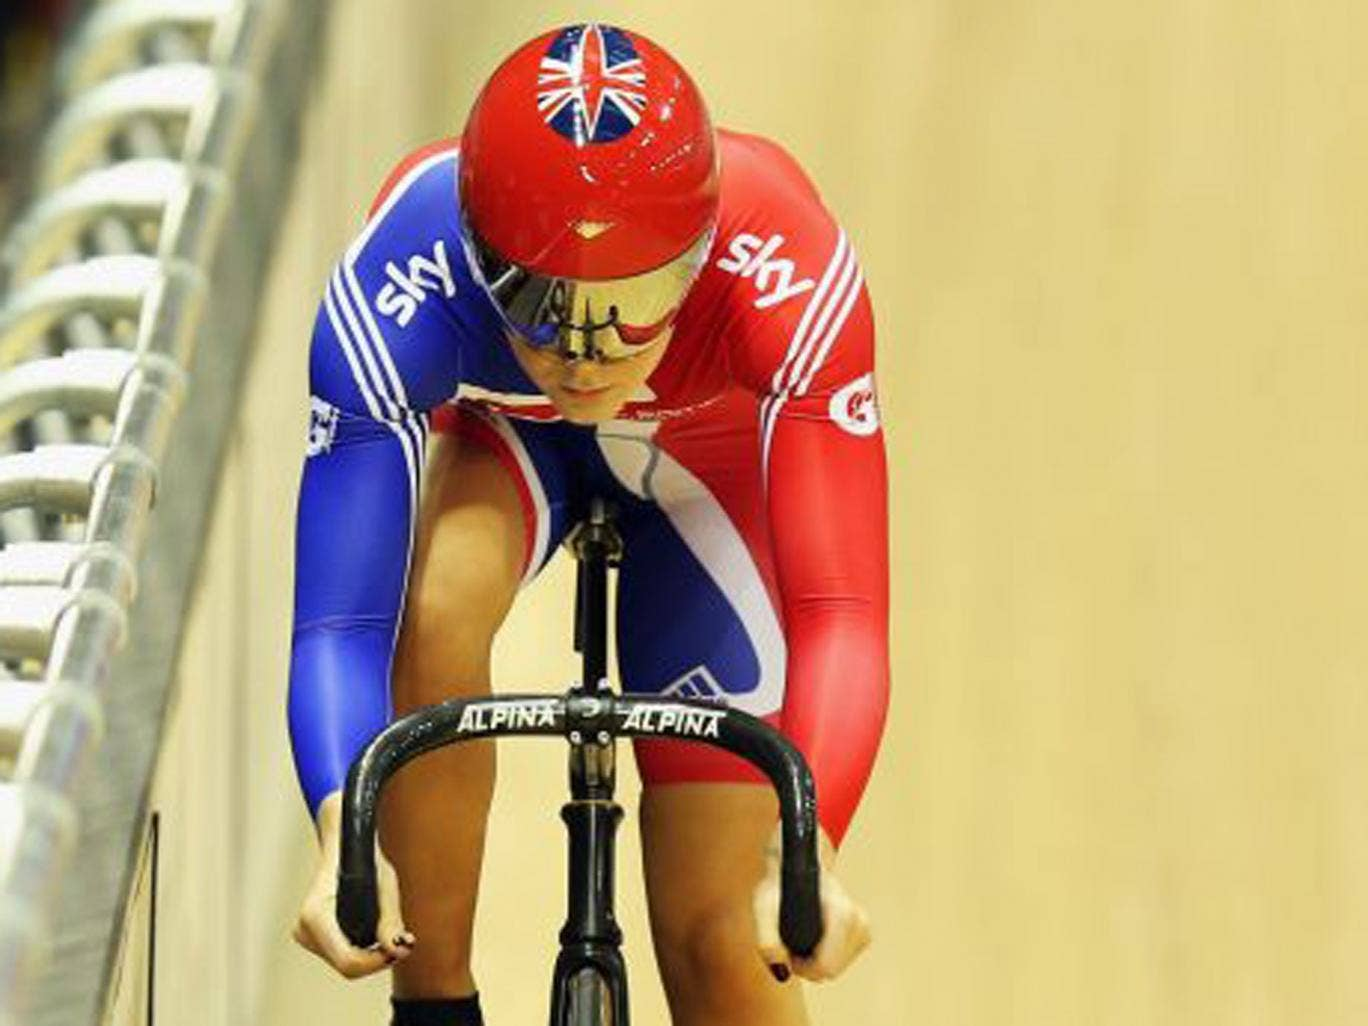 Sprinter Jess Varnish will be in her track cycling prime for the Rio Olympics in 2016